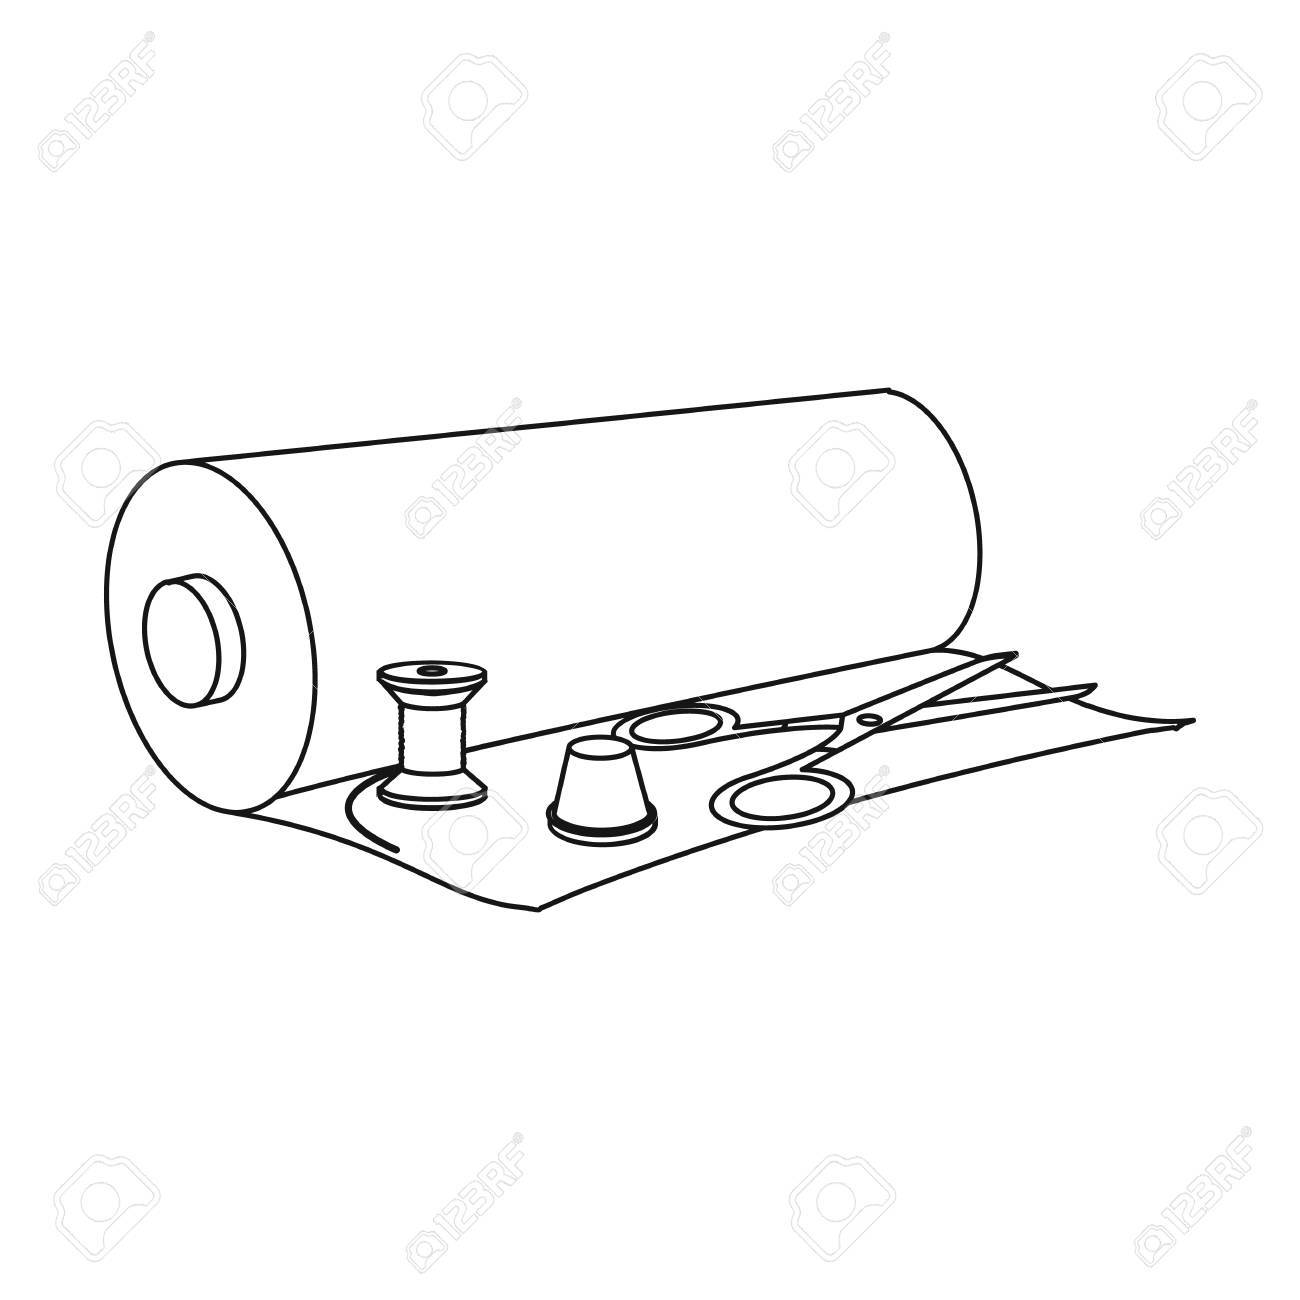 1300x1300 A Roll Of Sewing Fabric, Scissors, A Thimble And A Thread Coil